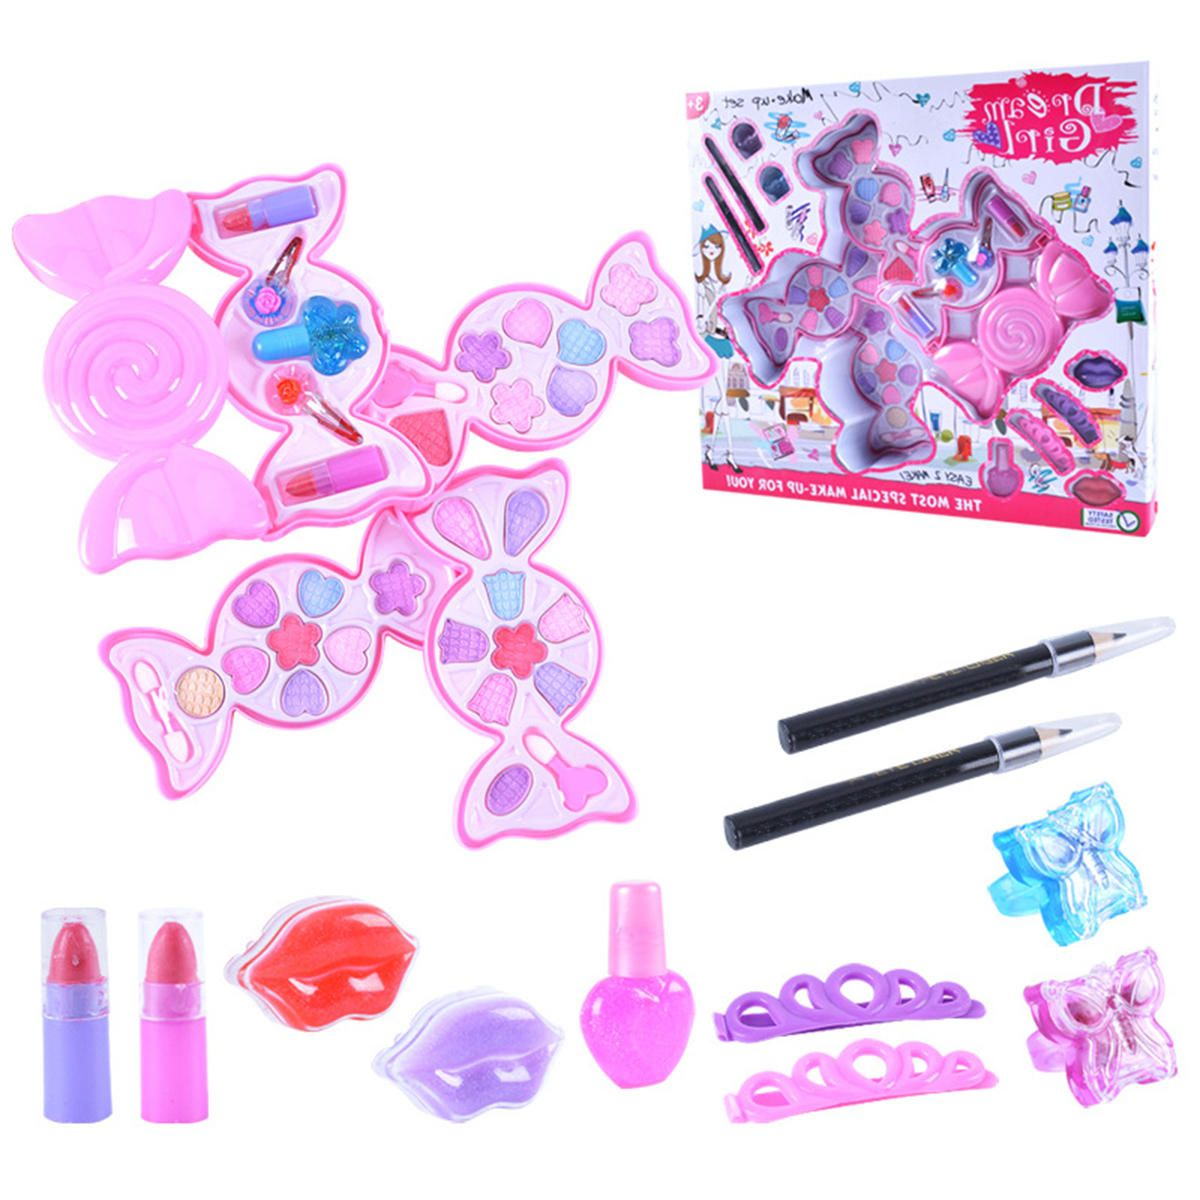 OSX US$10.23~18.23 Cosmetic Princess Makeup Set Kit For Kids Girls Eyeshadow Lip Gloss Blushes Toys